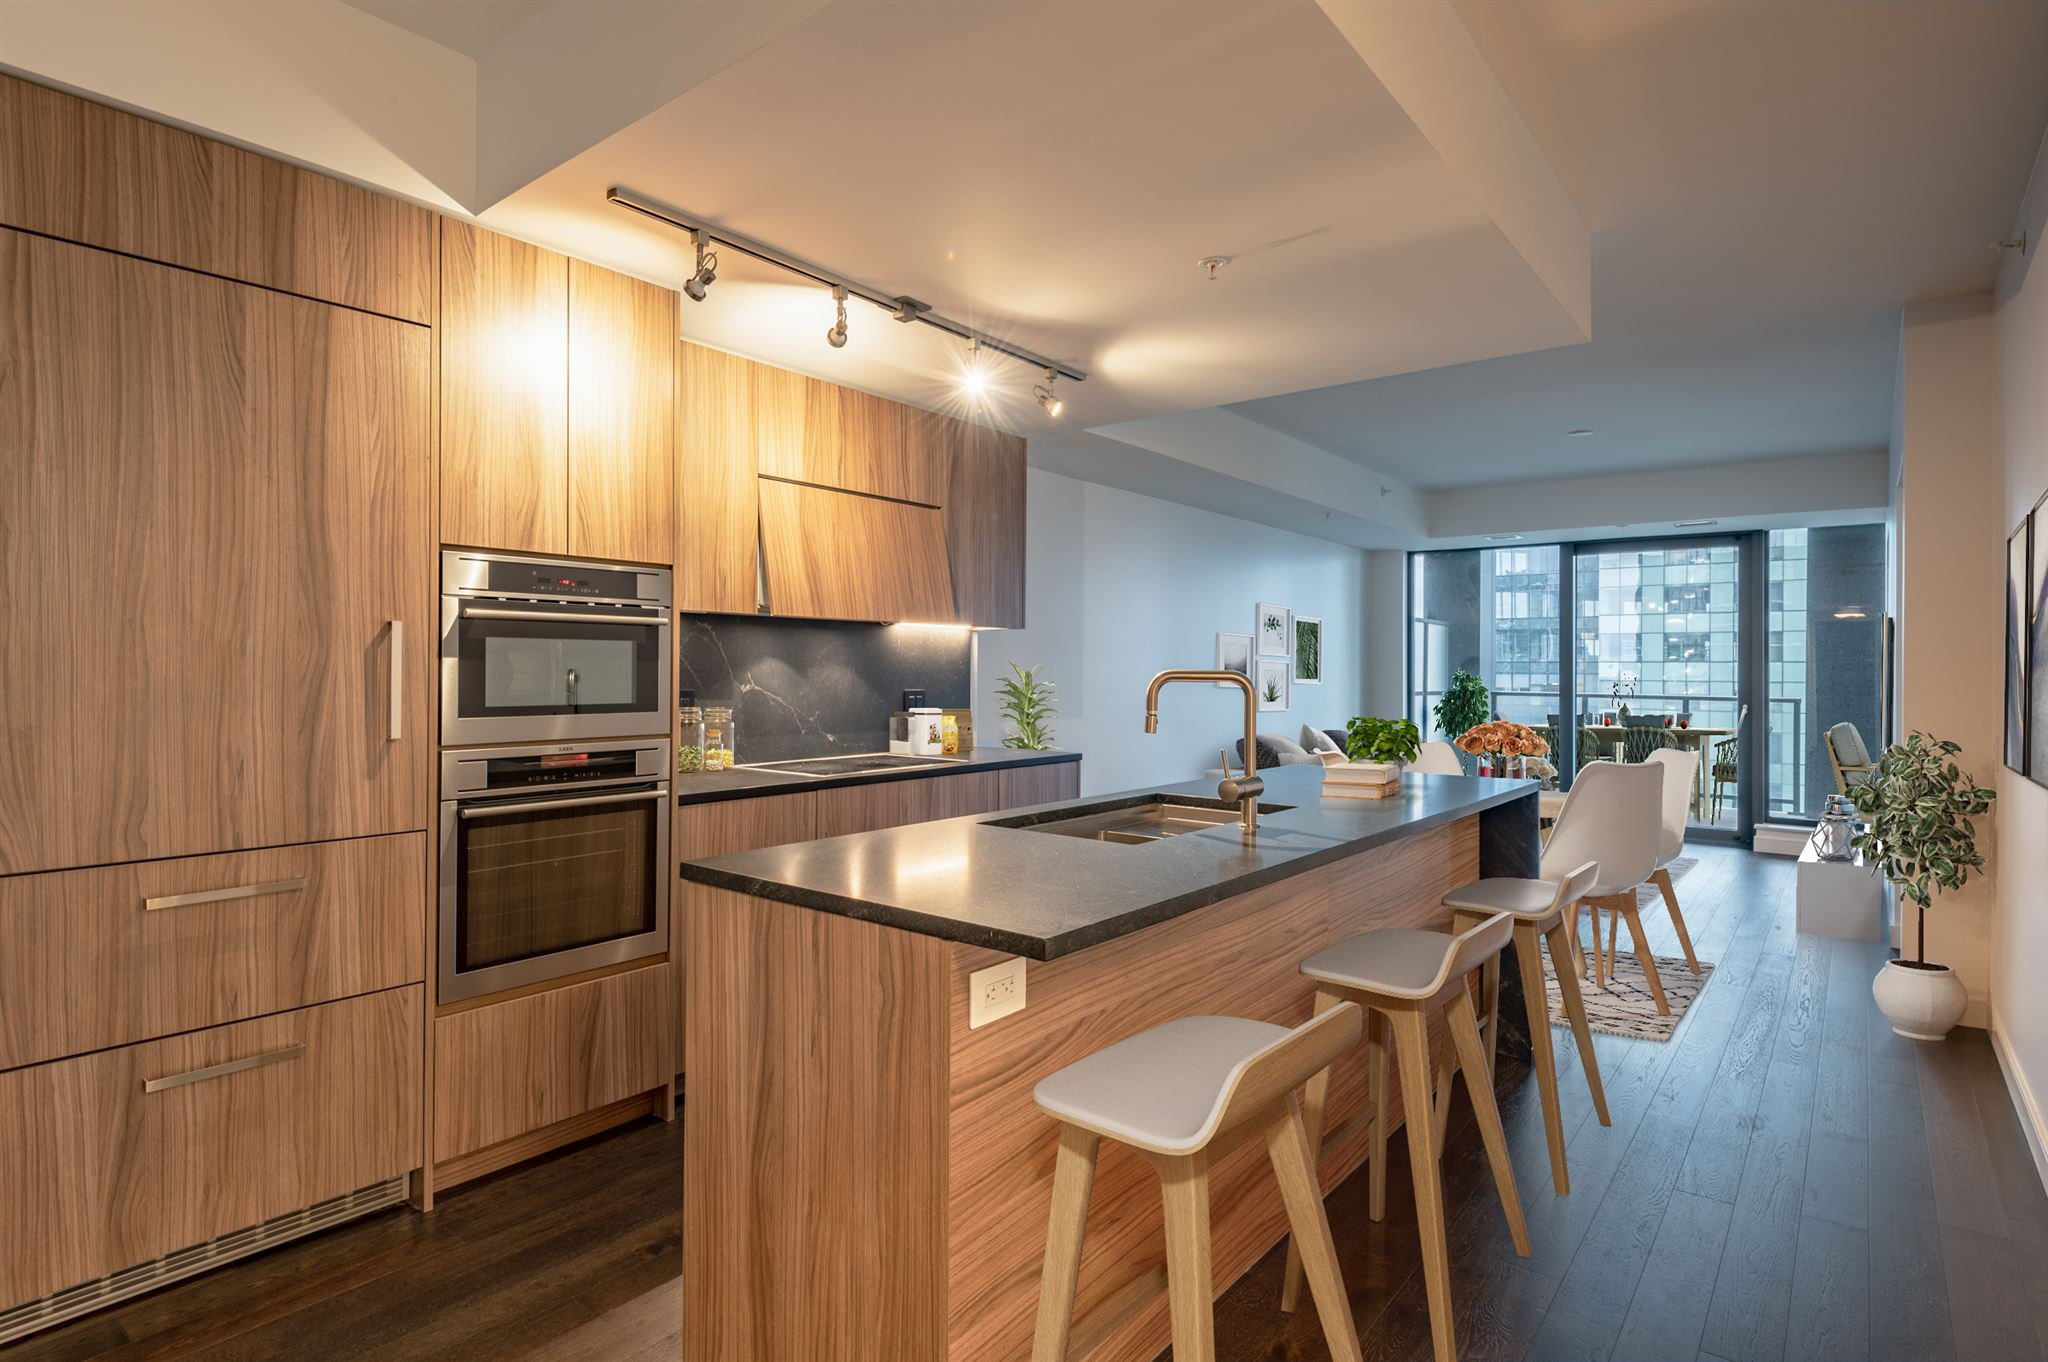 Main Photo: 1801 1650 Granville Street in Halifax: 2-Halifax South Residential for sale (Halifax-Dartmouth)  : MLS®# 202100503